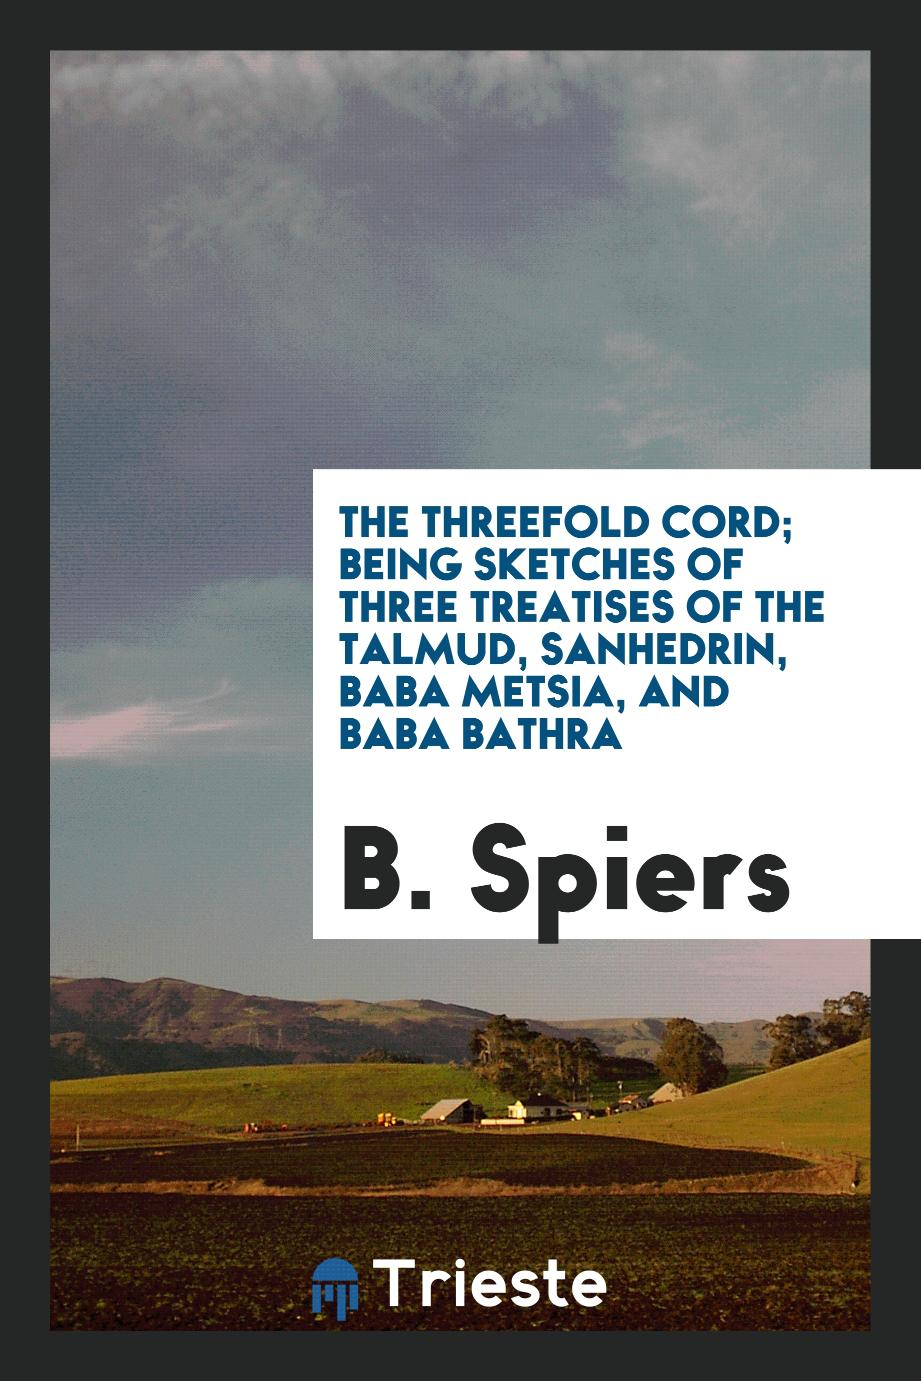 The Threefold Cord; Being Sketches of Three Treatises of the Talmud, Sanhedrin, Baba Metsia, and Baba Bathra